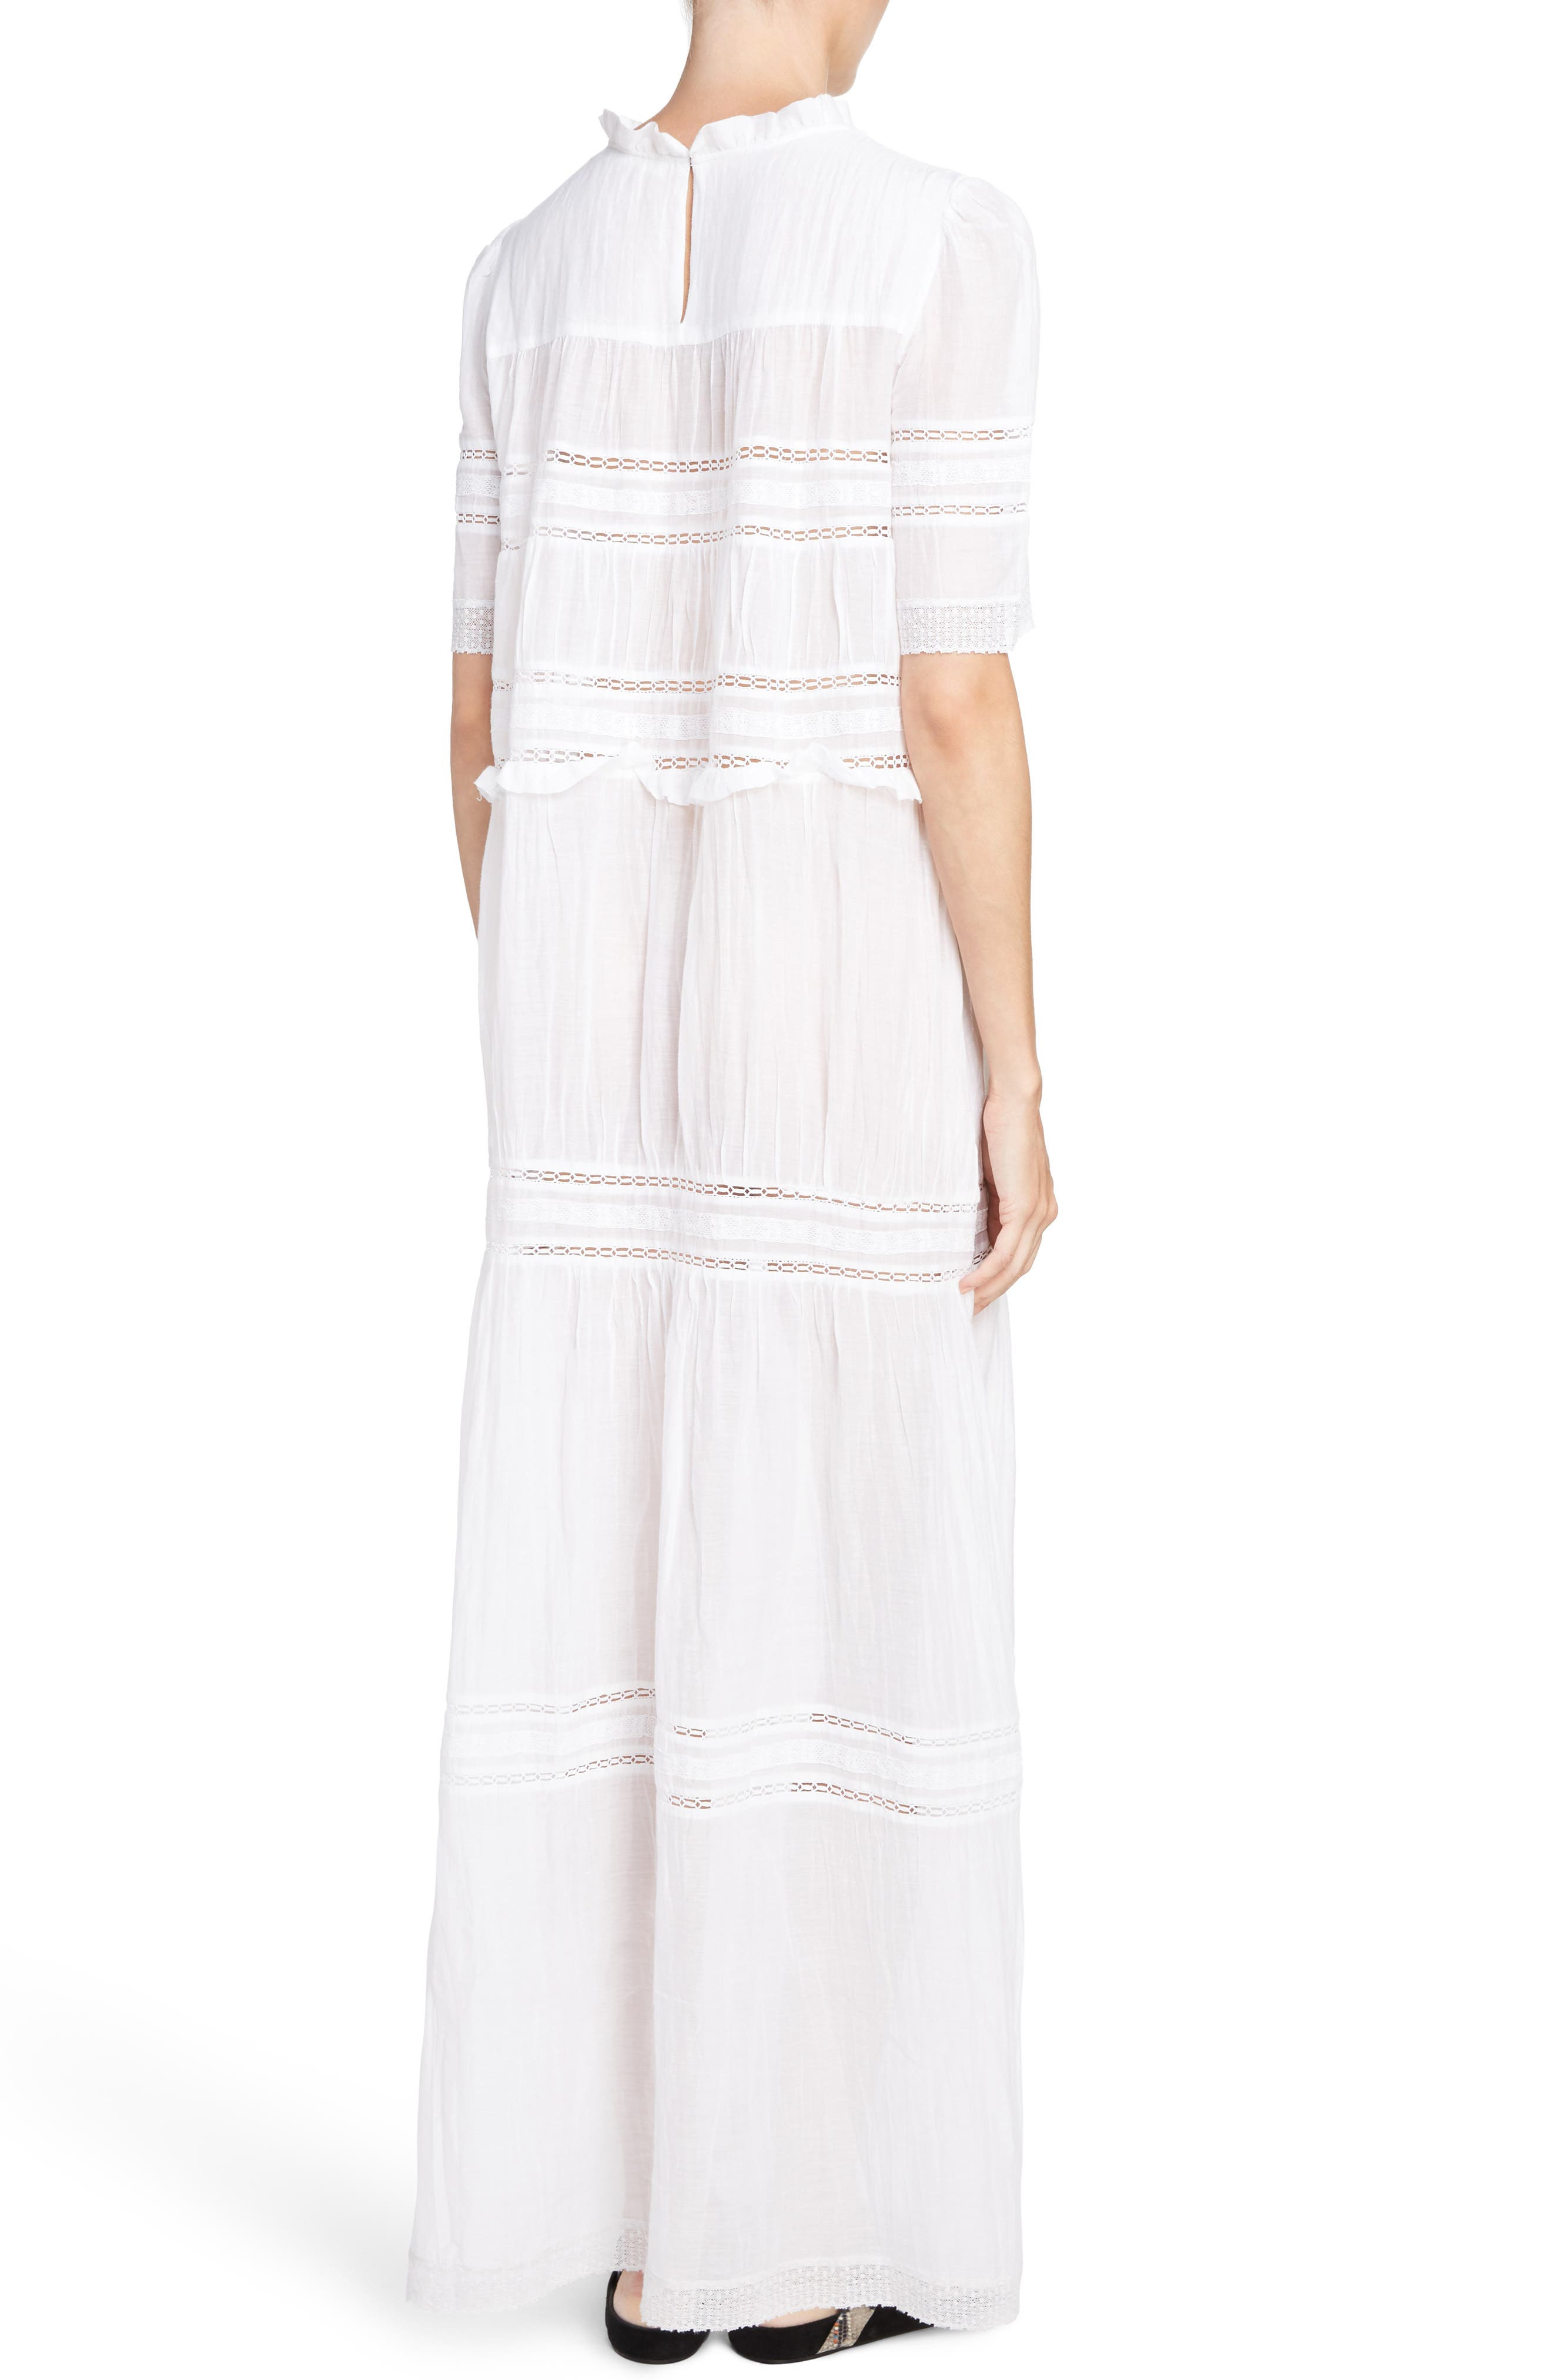 Vealy Maxi Dress,                             Alternate thumbnail 2, color,                             100